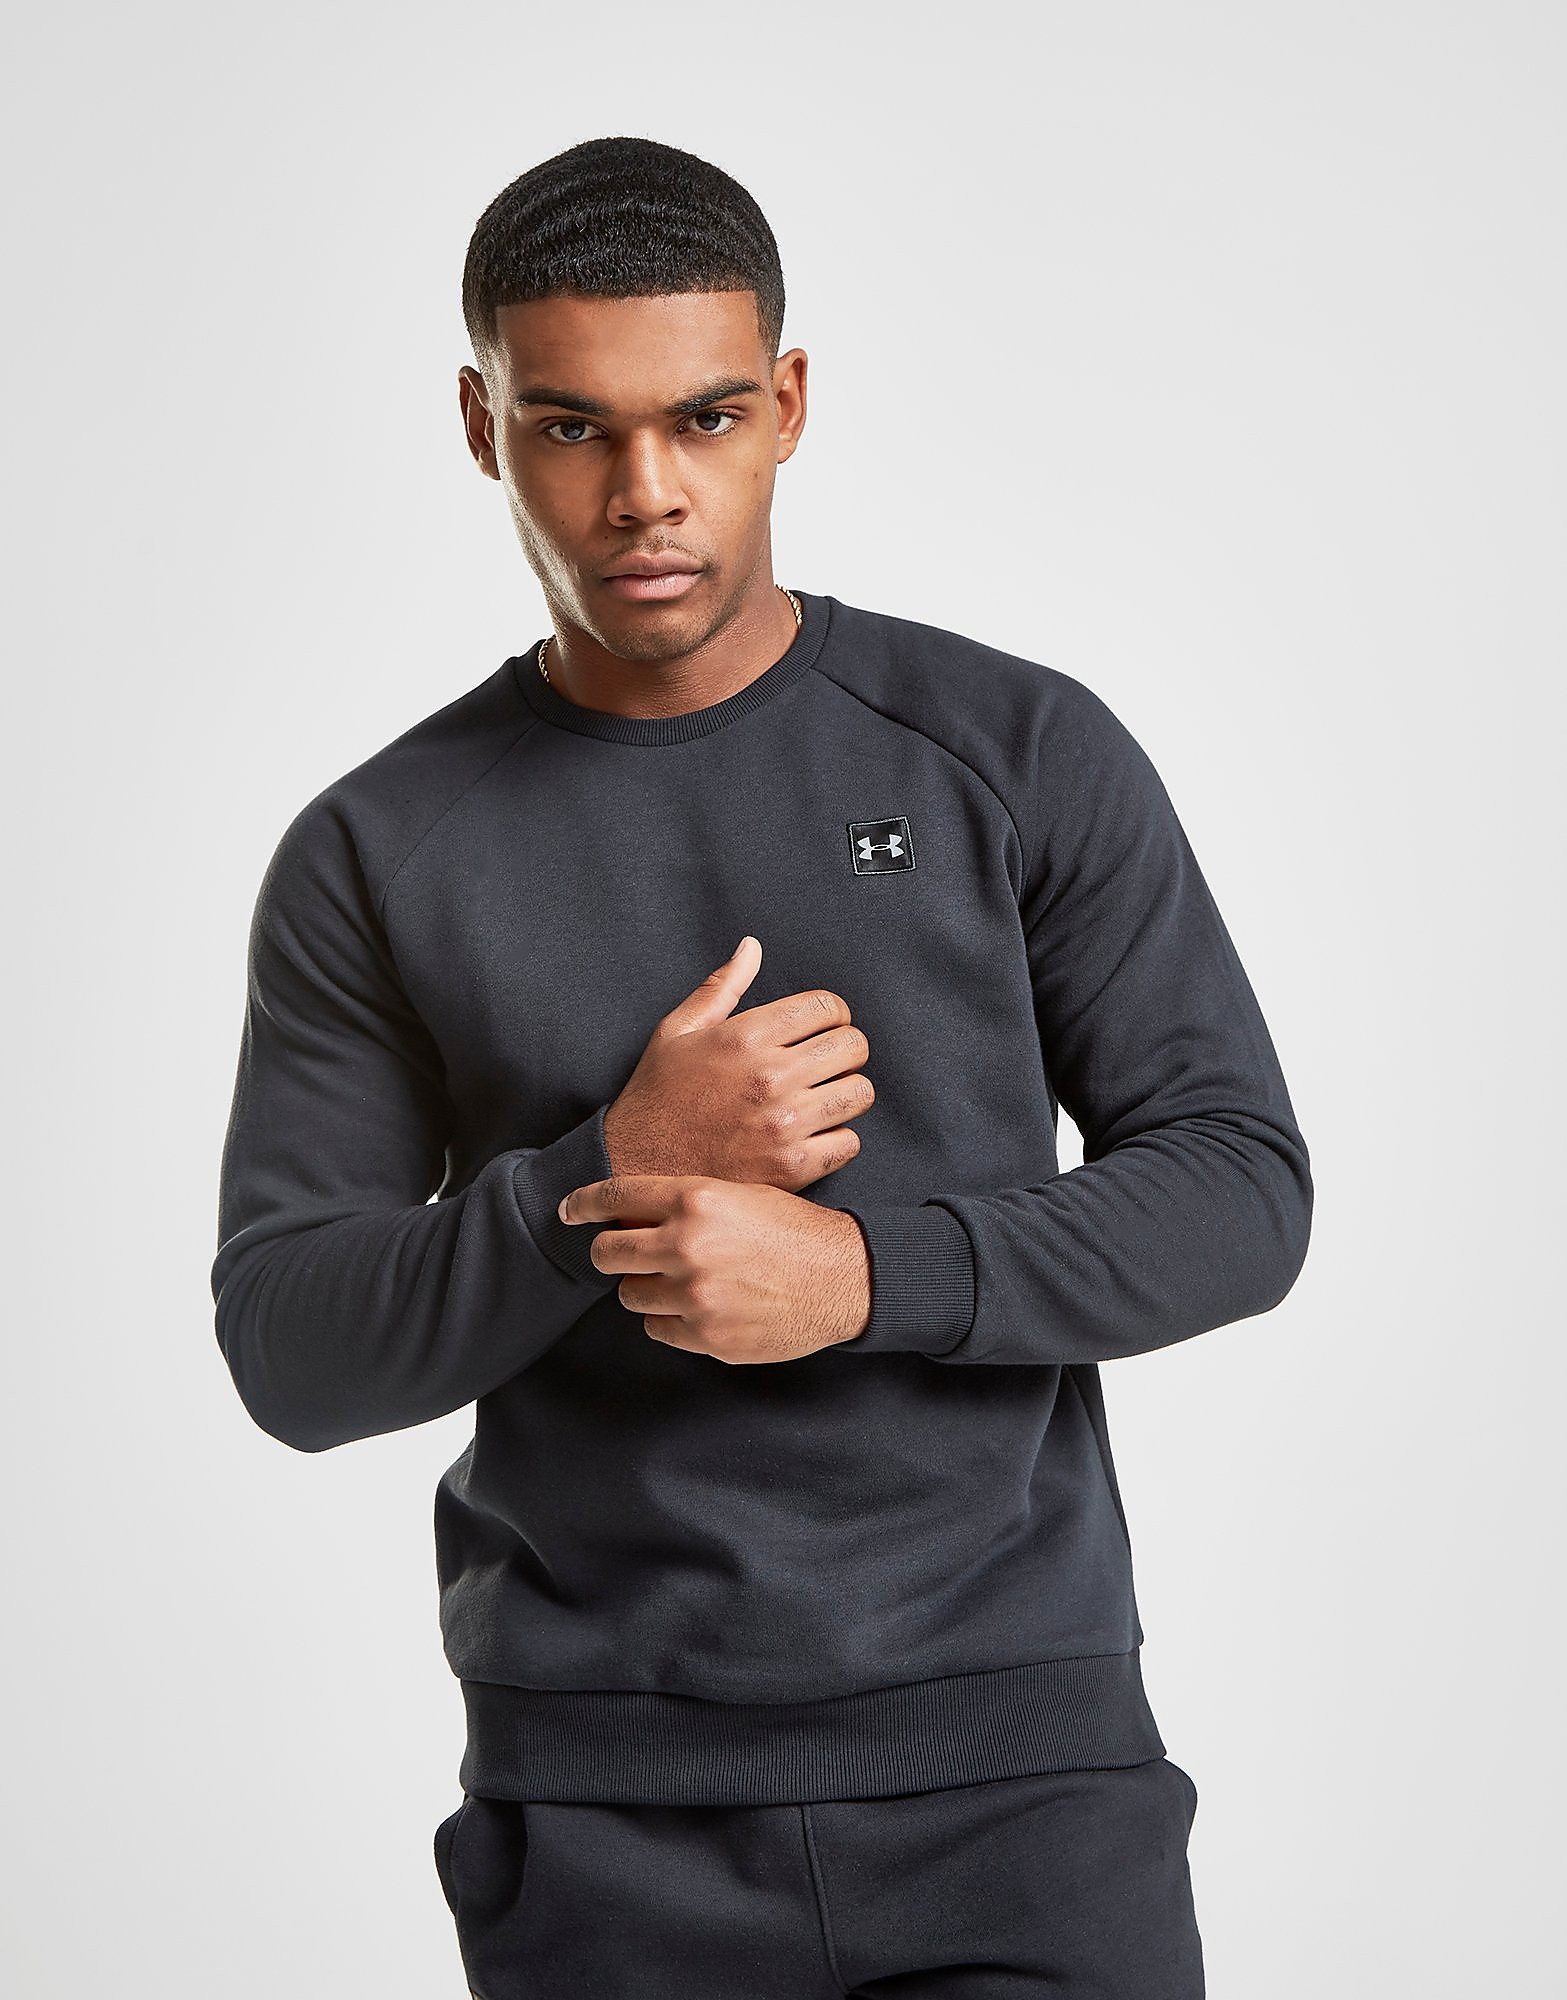 Under Armour Rival Crew Sweatshirt - Schwarz - Mens, Schwarz